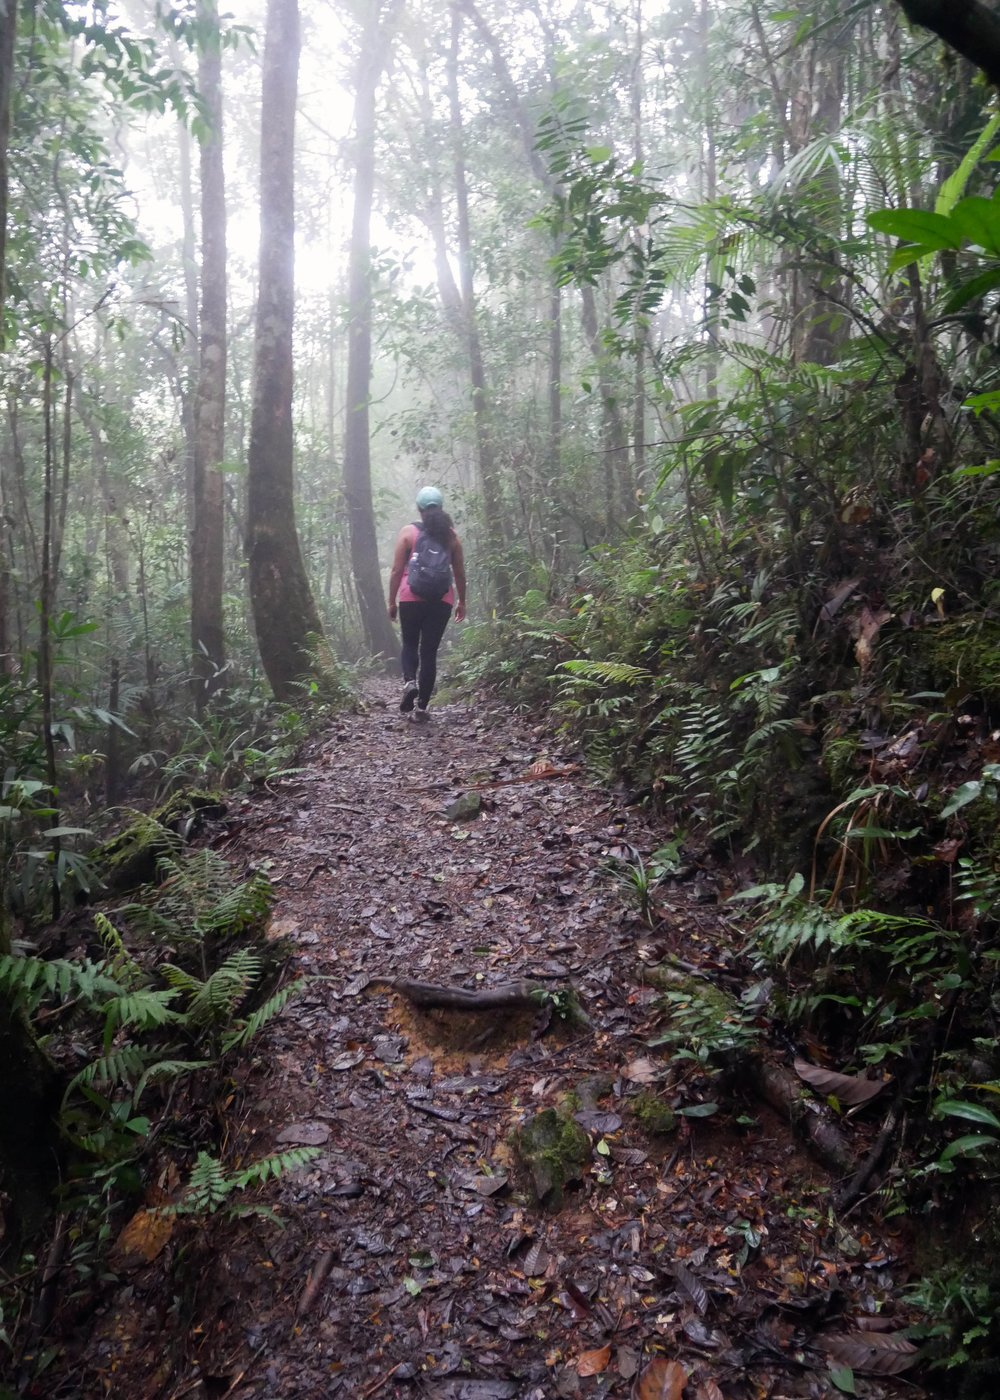 Mount Kinabalu cloud forest, Borneo